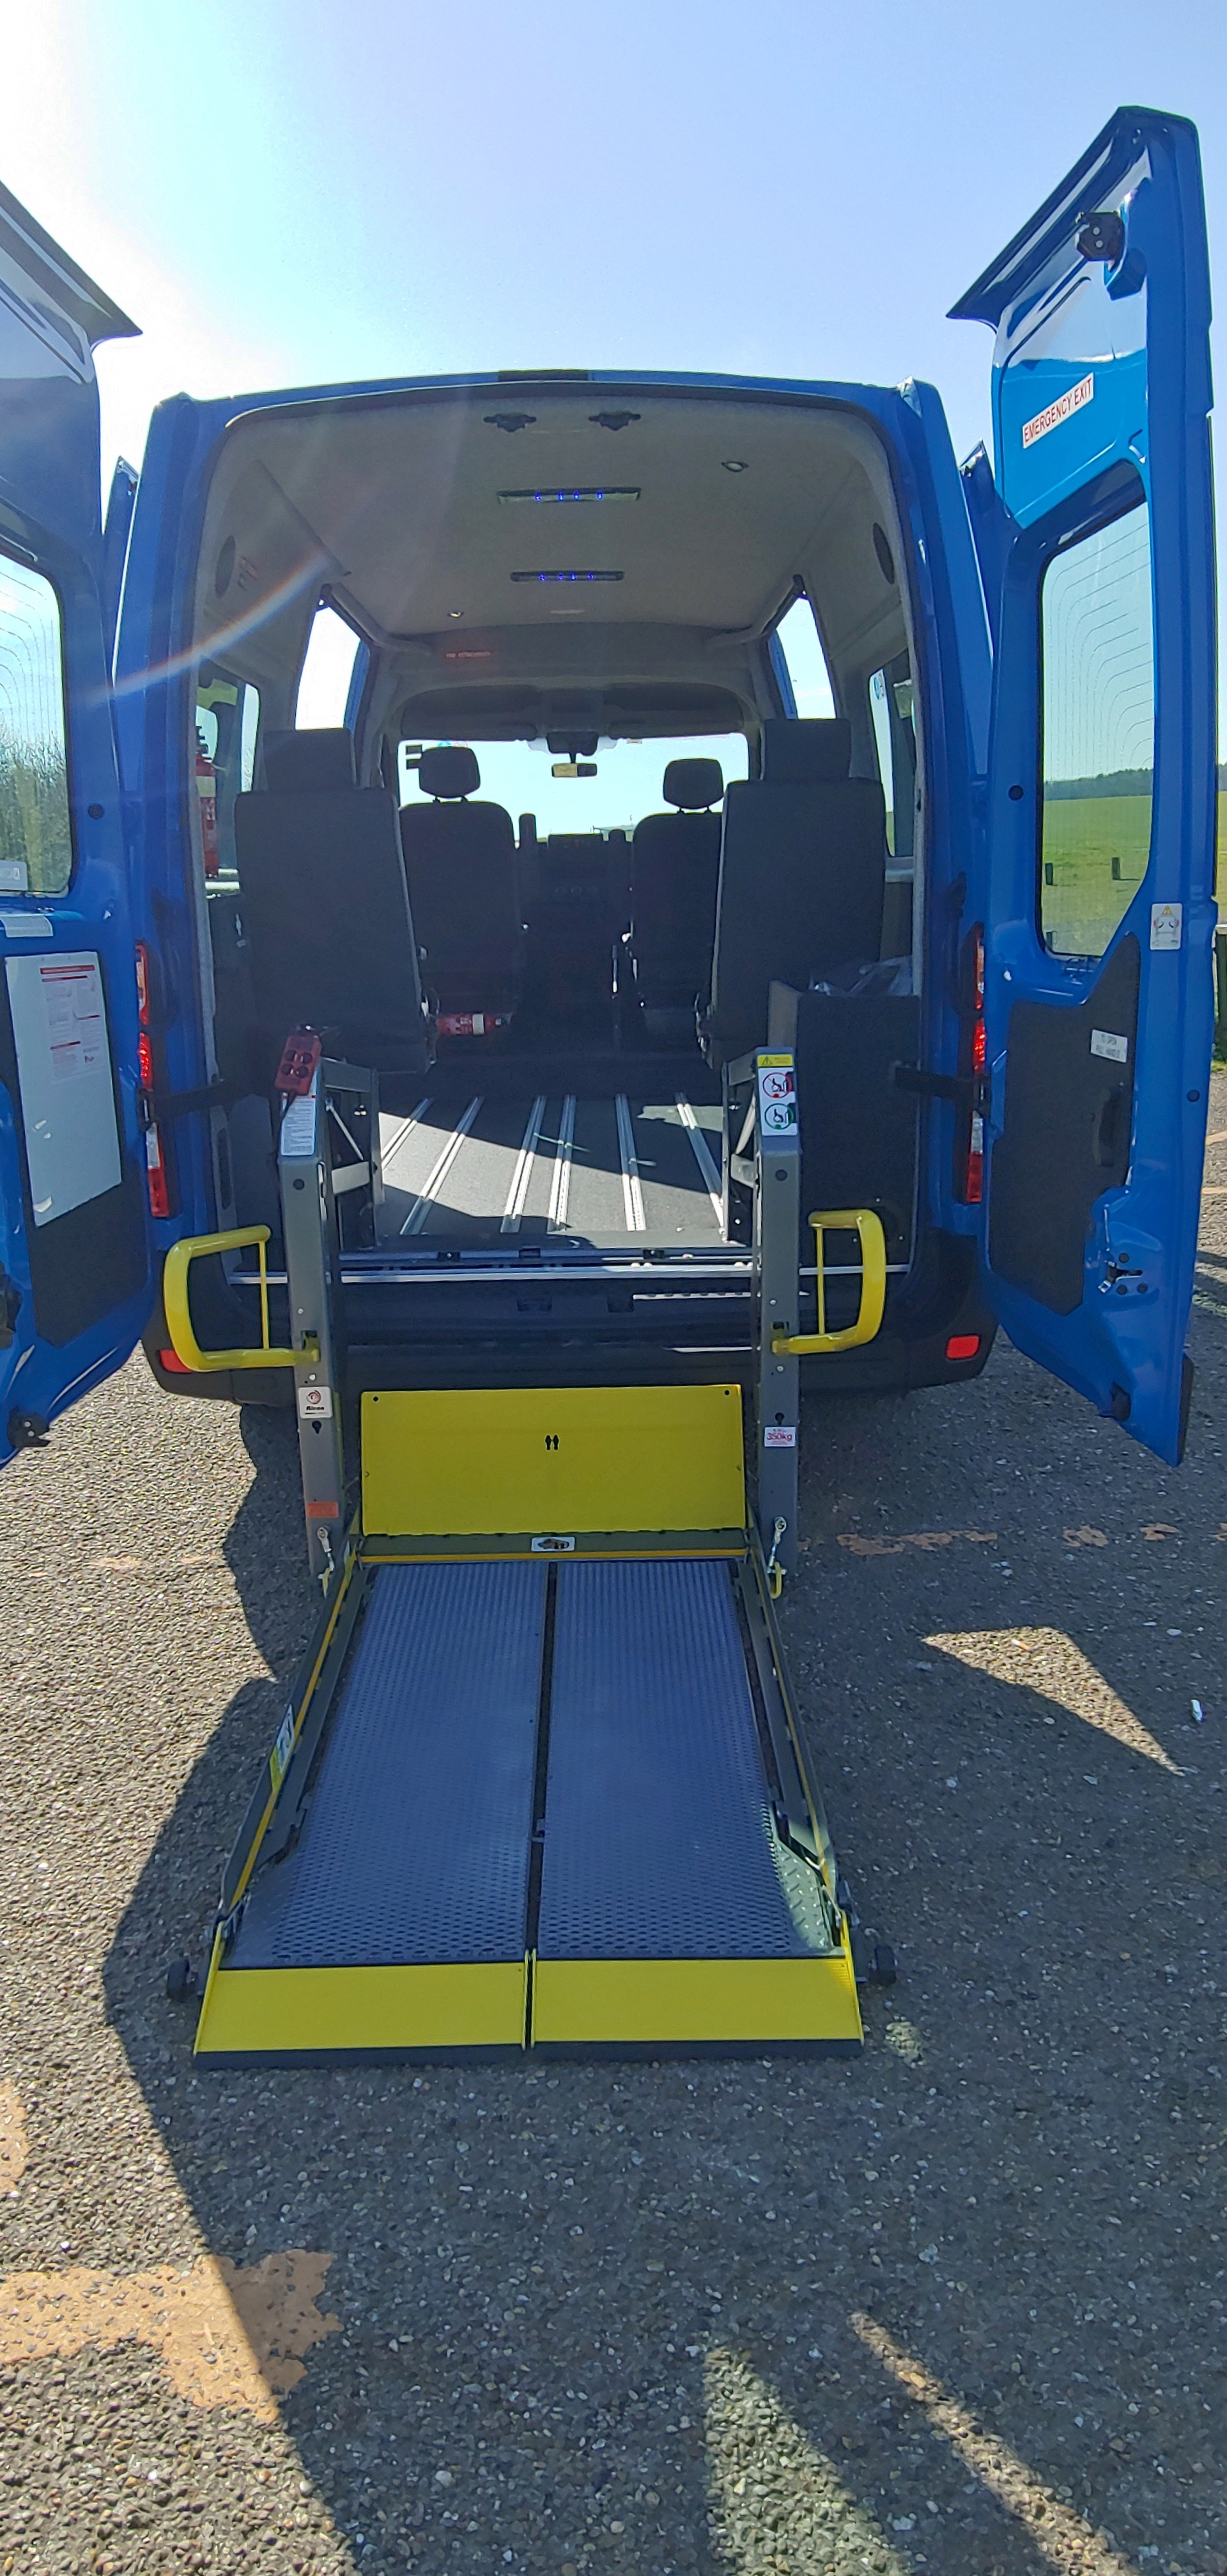 Ricon tail lift deployed Warnerbus converted minibus